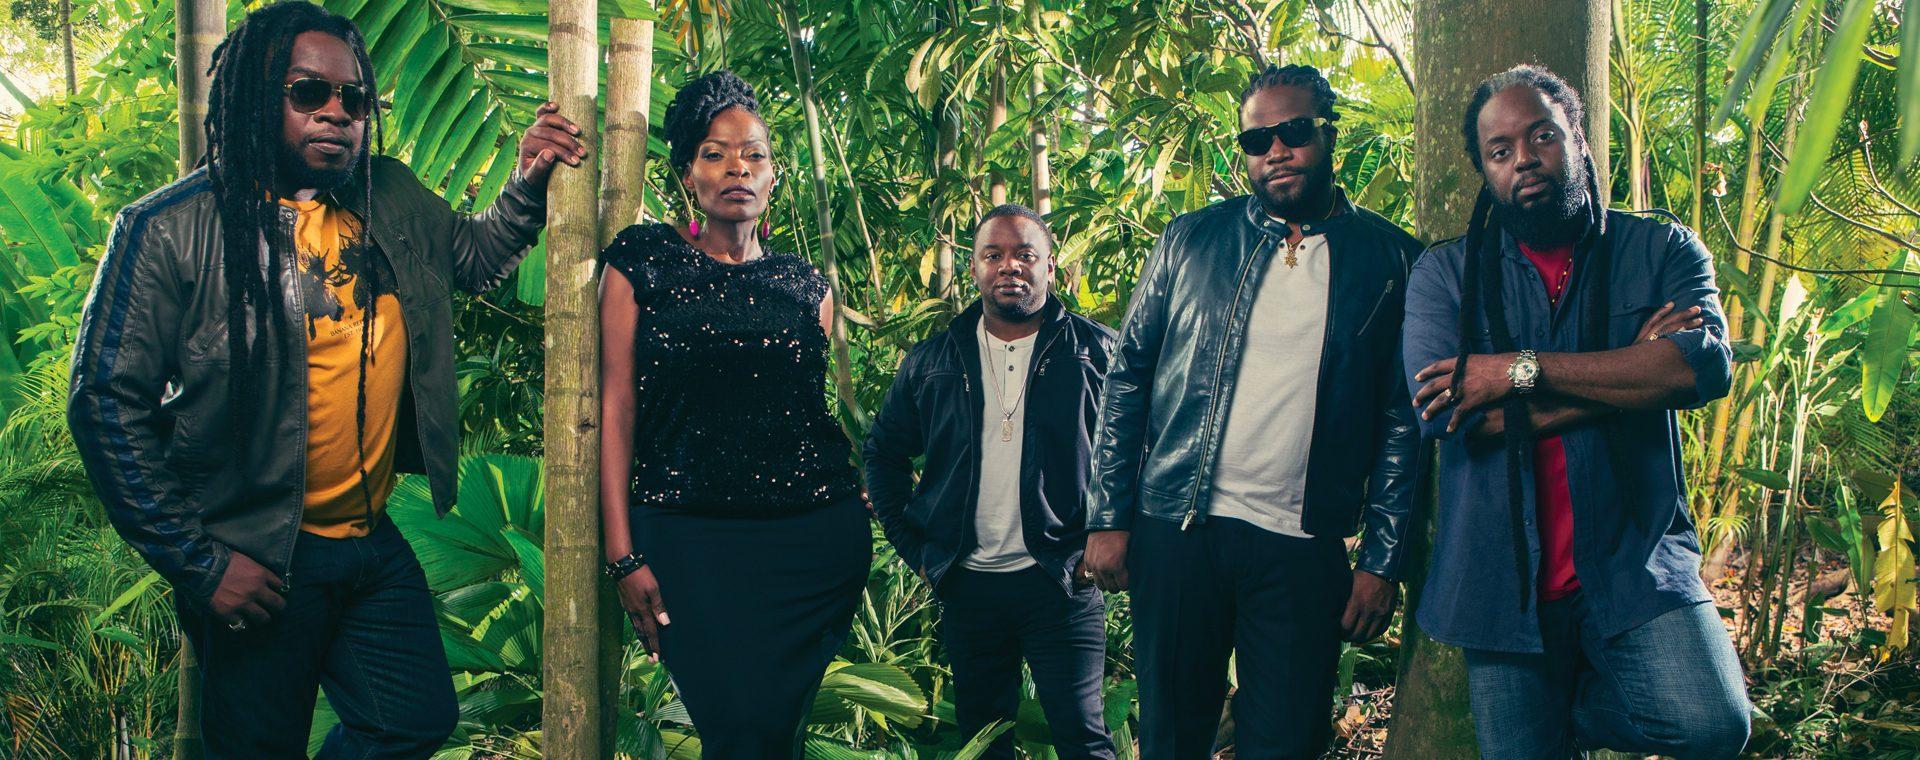 LATEST ISSUE <br><b>Morgan Heritage</b></br>